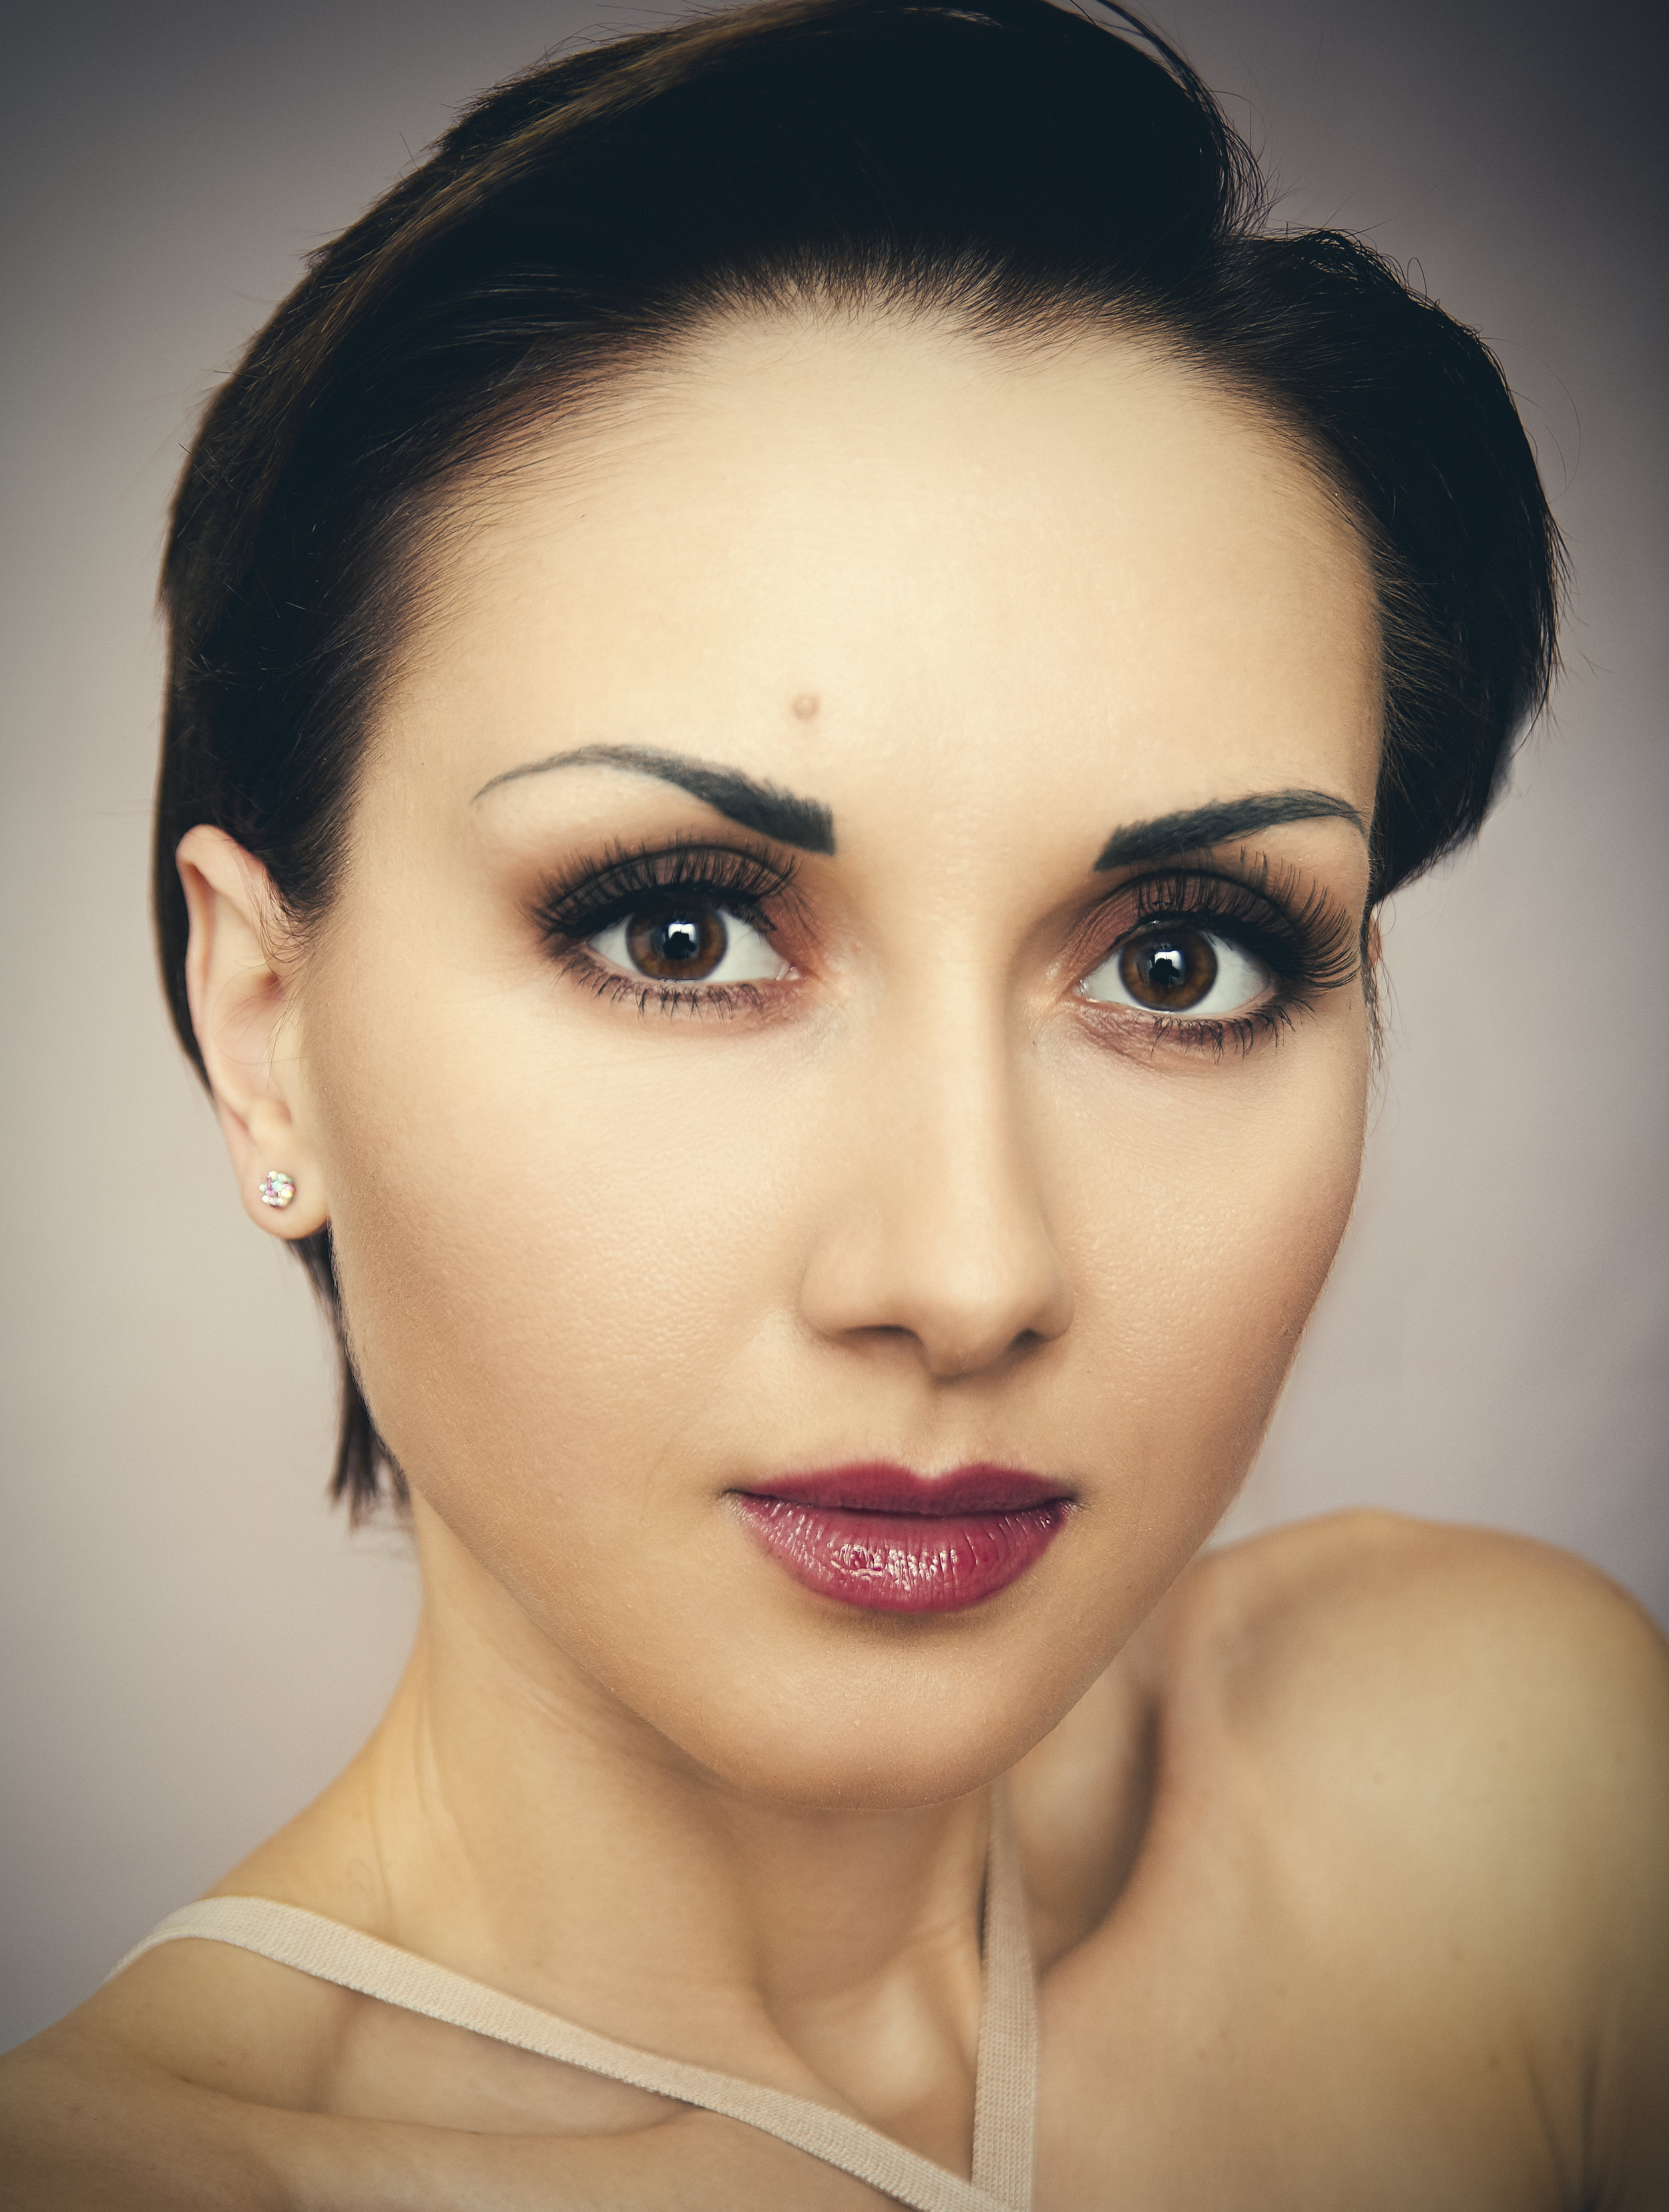 Makeover Beauty Portrait